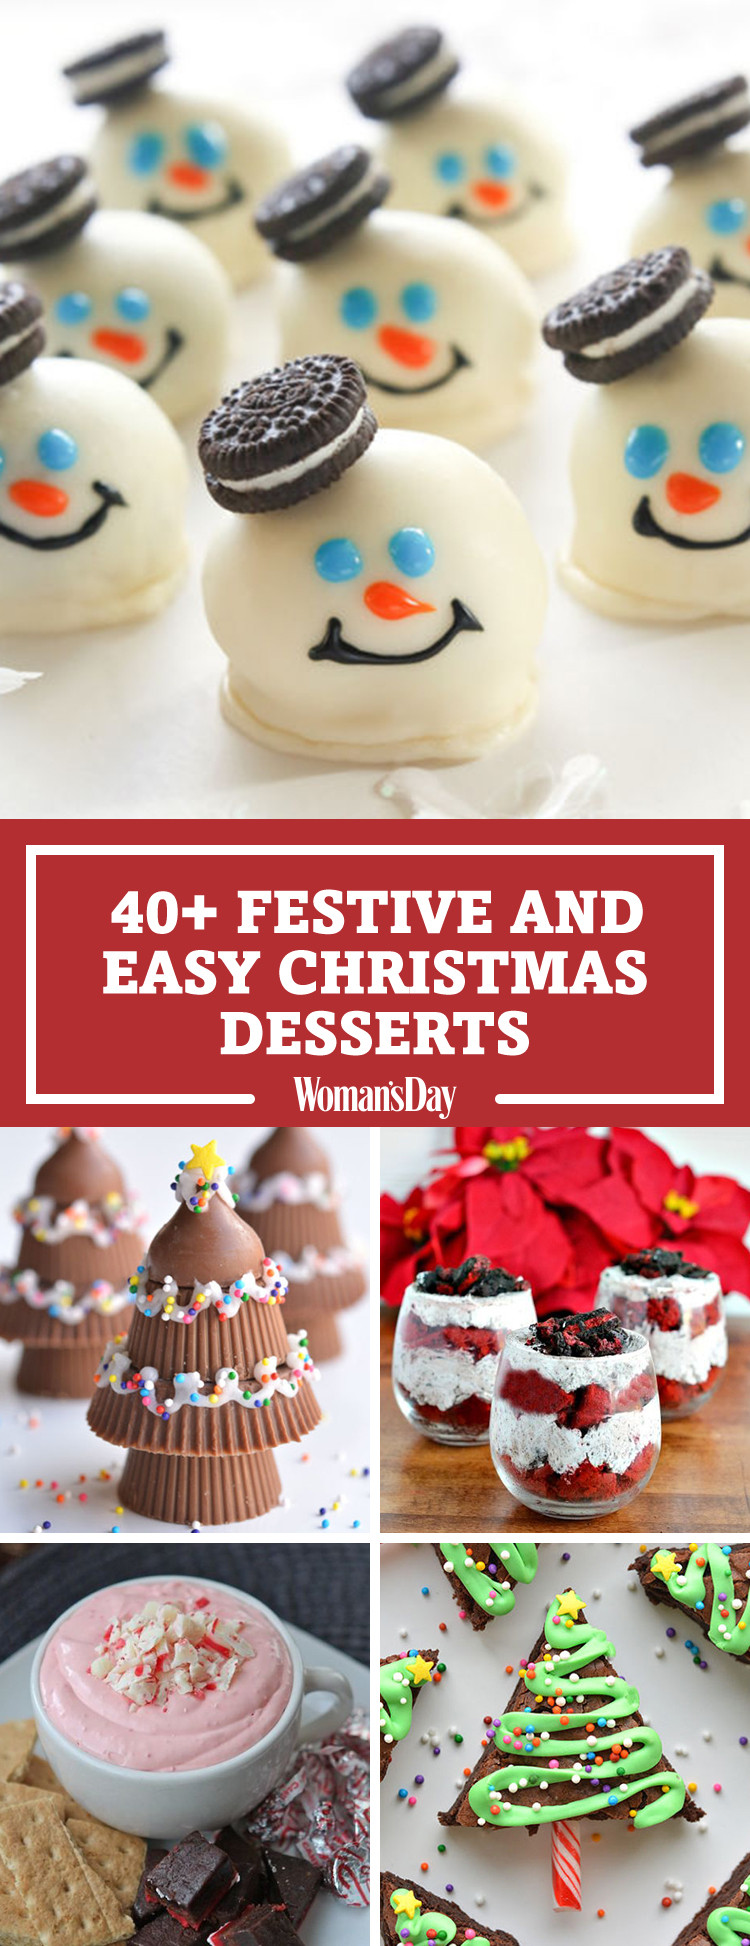 Fun Christmas Desserts Recipes  57 Easy Christmas Dessert Recipes Best Ideas for Fun